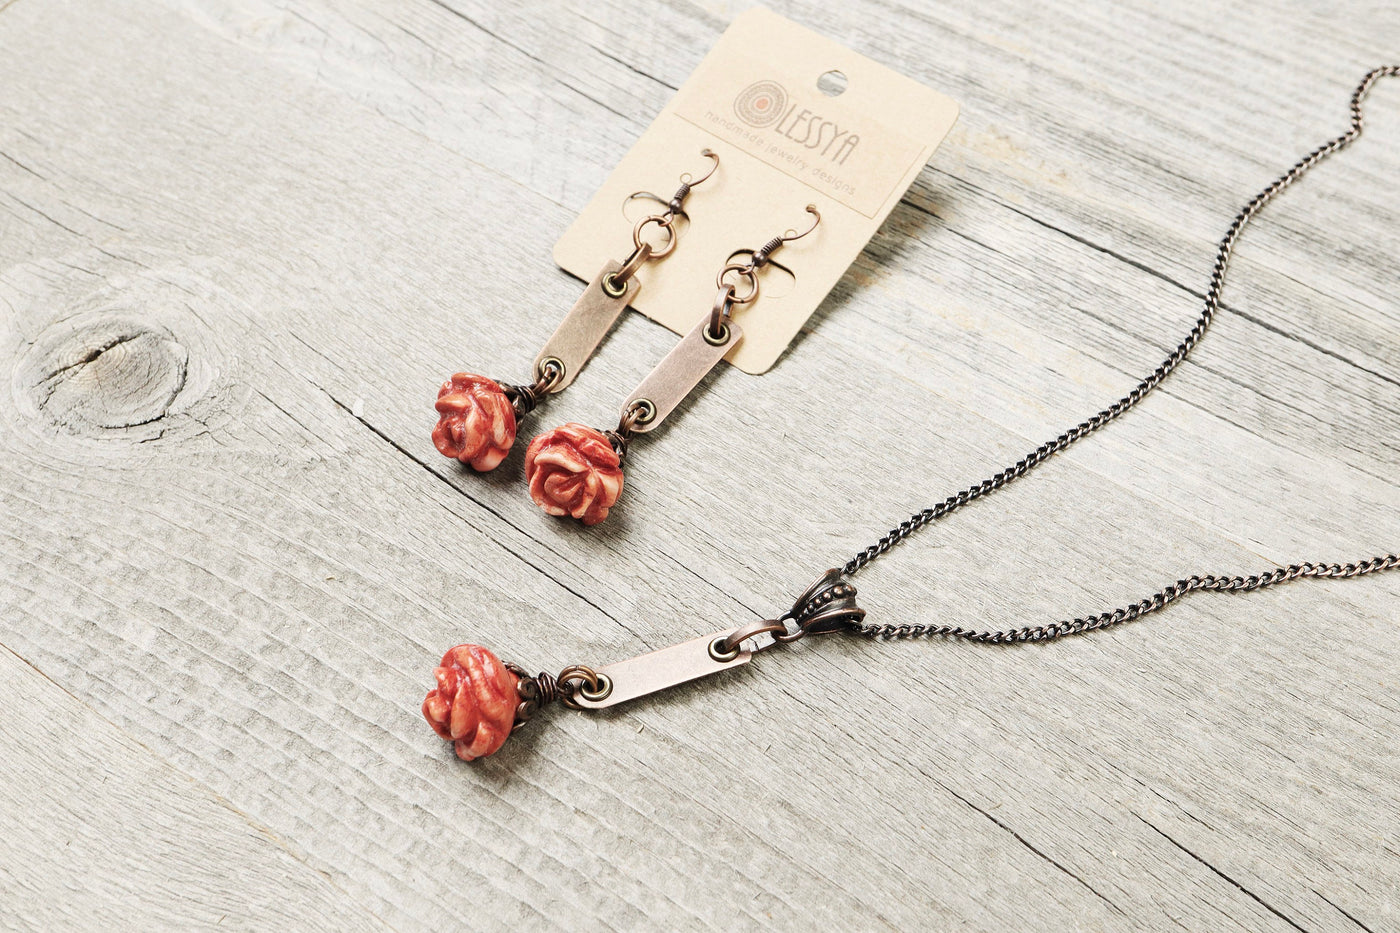 Red Rose Nacre Mother of Pearl Necklace - Mother's Day Gift for Her Lovely Elegant Wife Girlfriend Daughter Pendant Cute Boho Jewelry Set